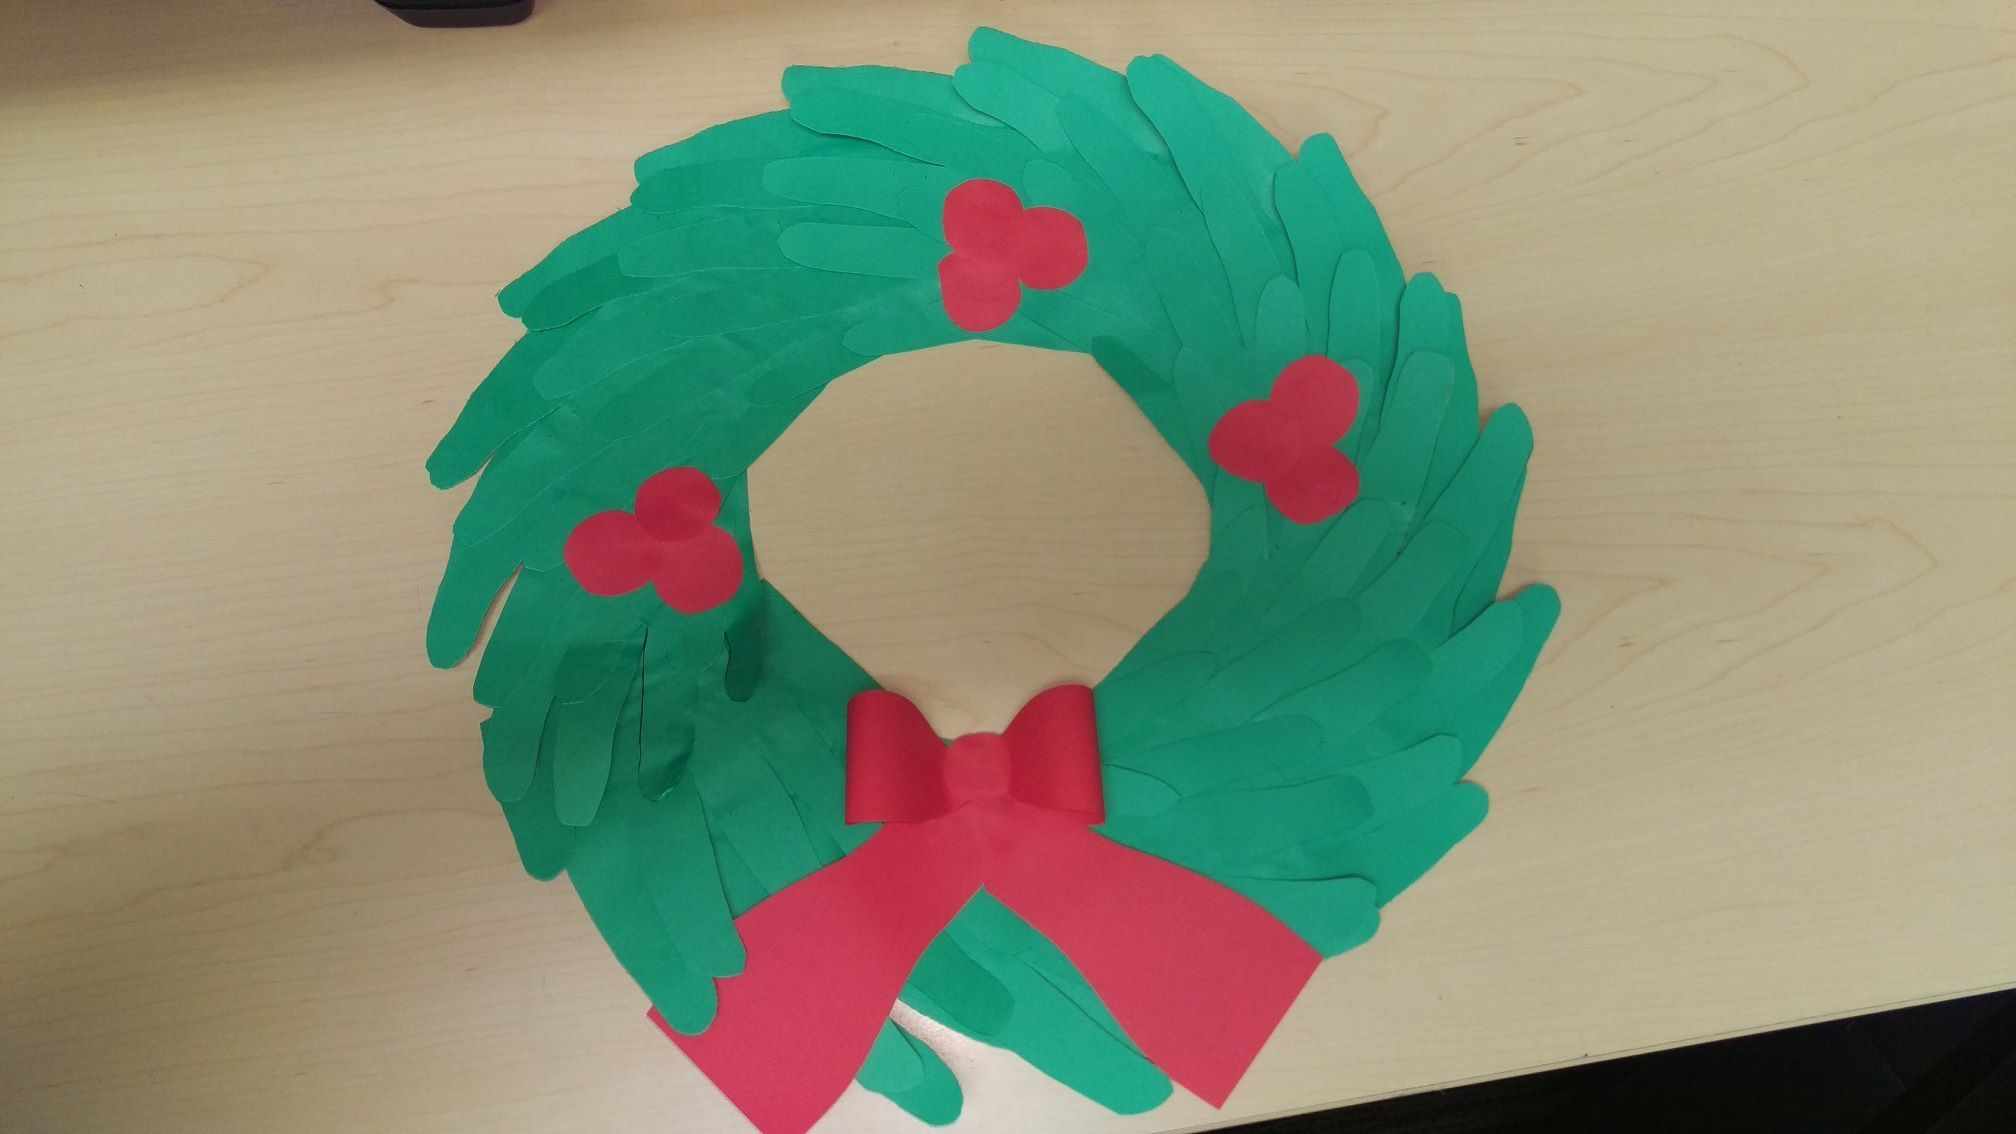 Christmas wreath made of hands The base is a cardboard ring cut out